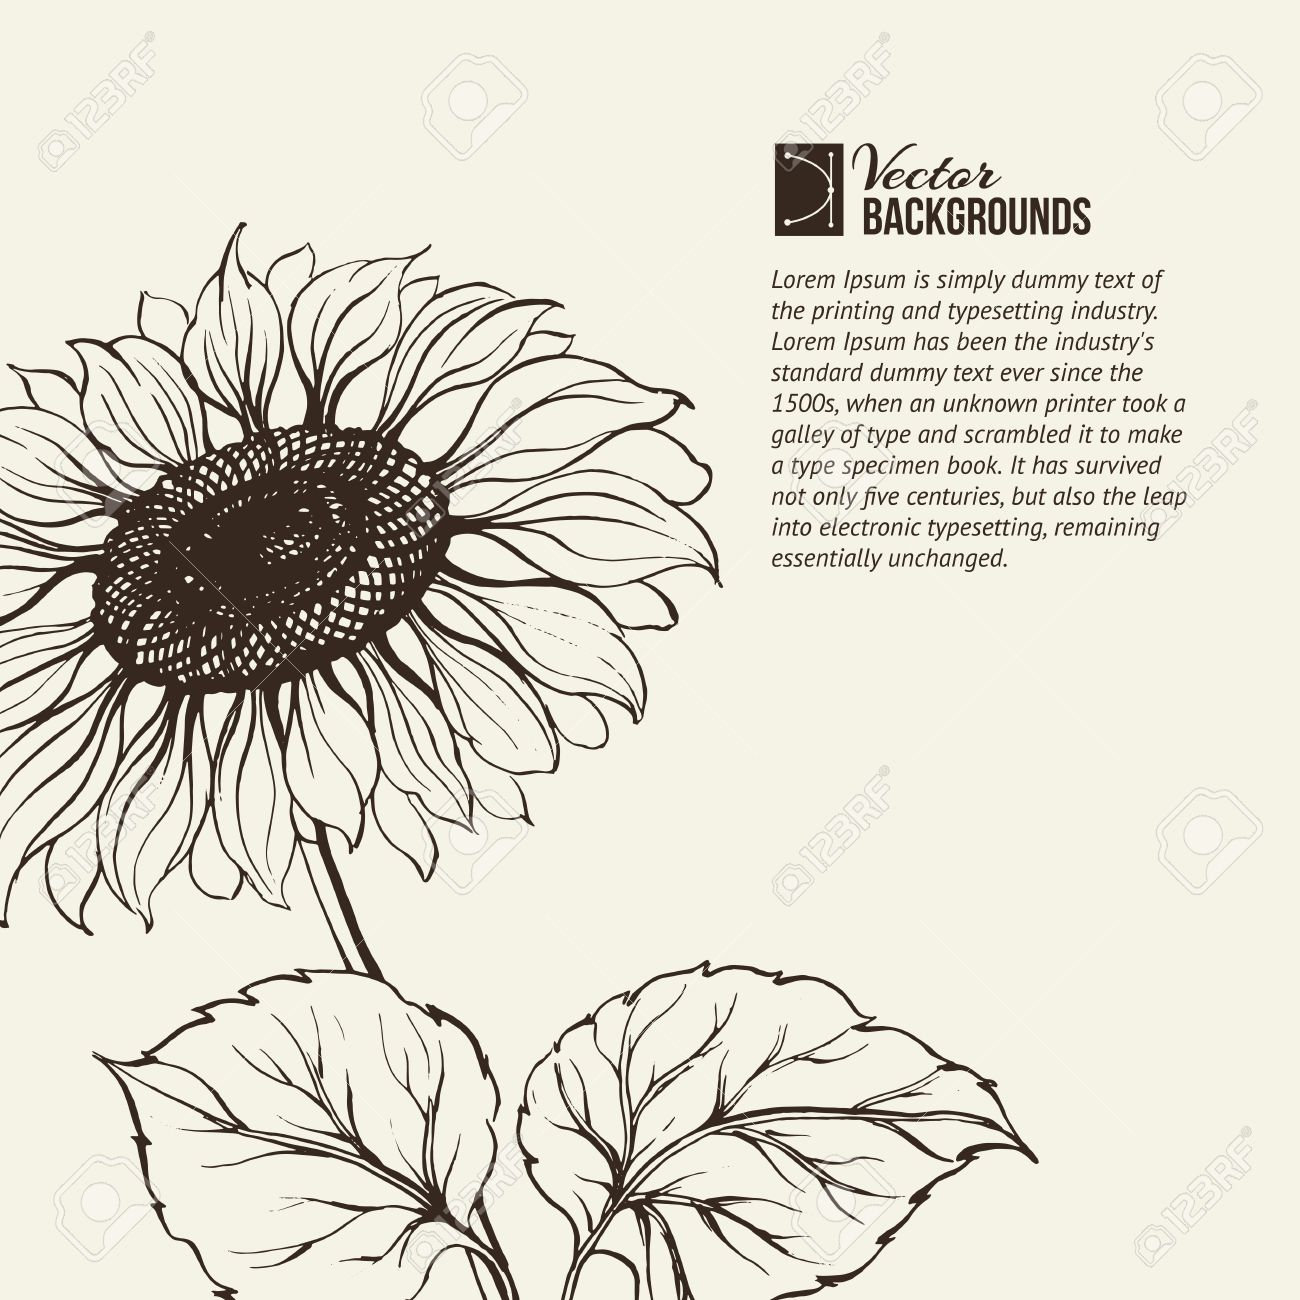 Illustration of sunflower  Vector illustration, contains transparencies, gradients and effects Stock Vector - 18737930